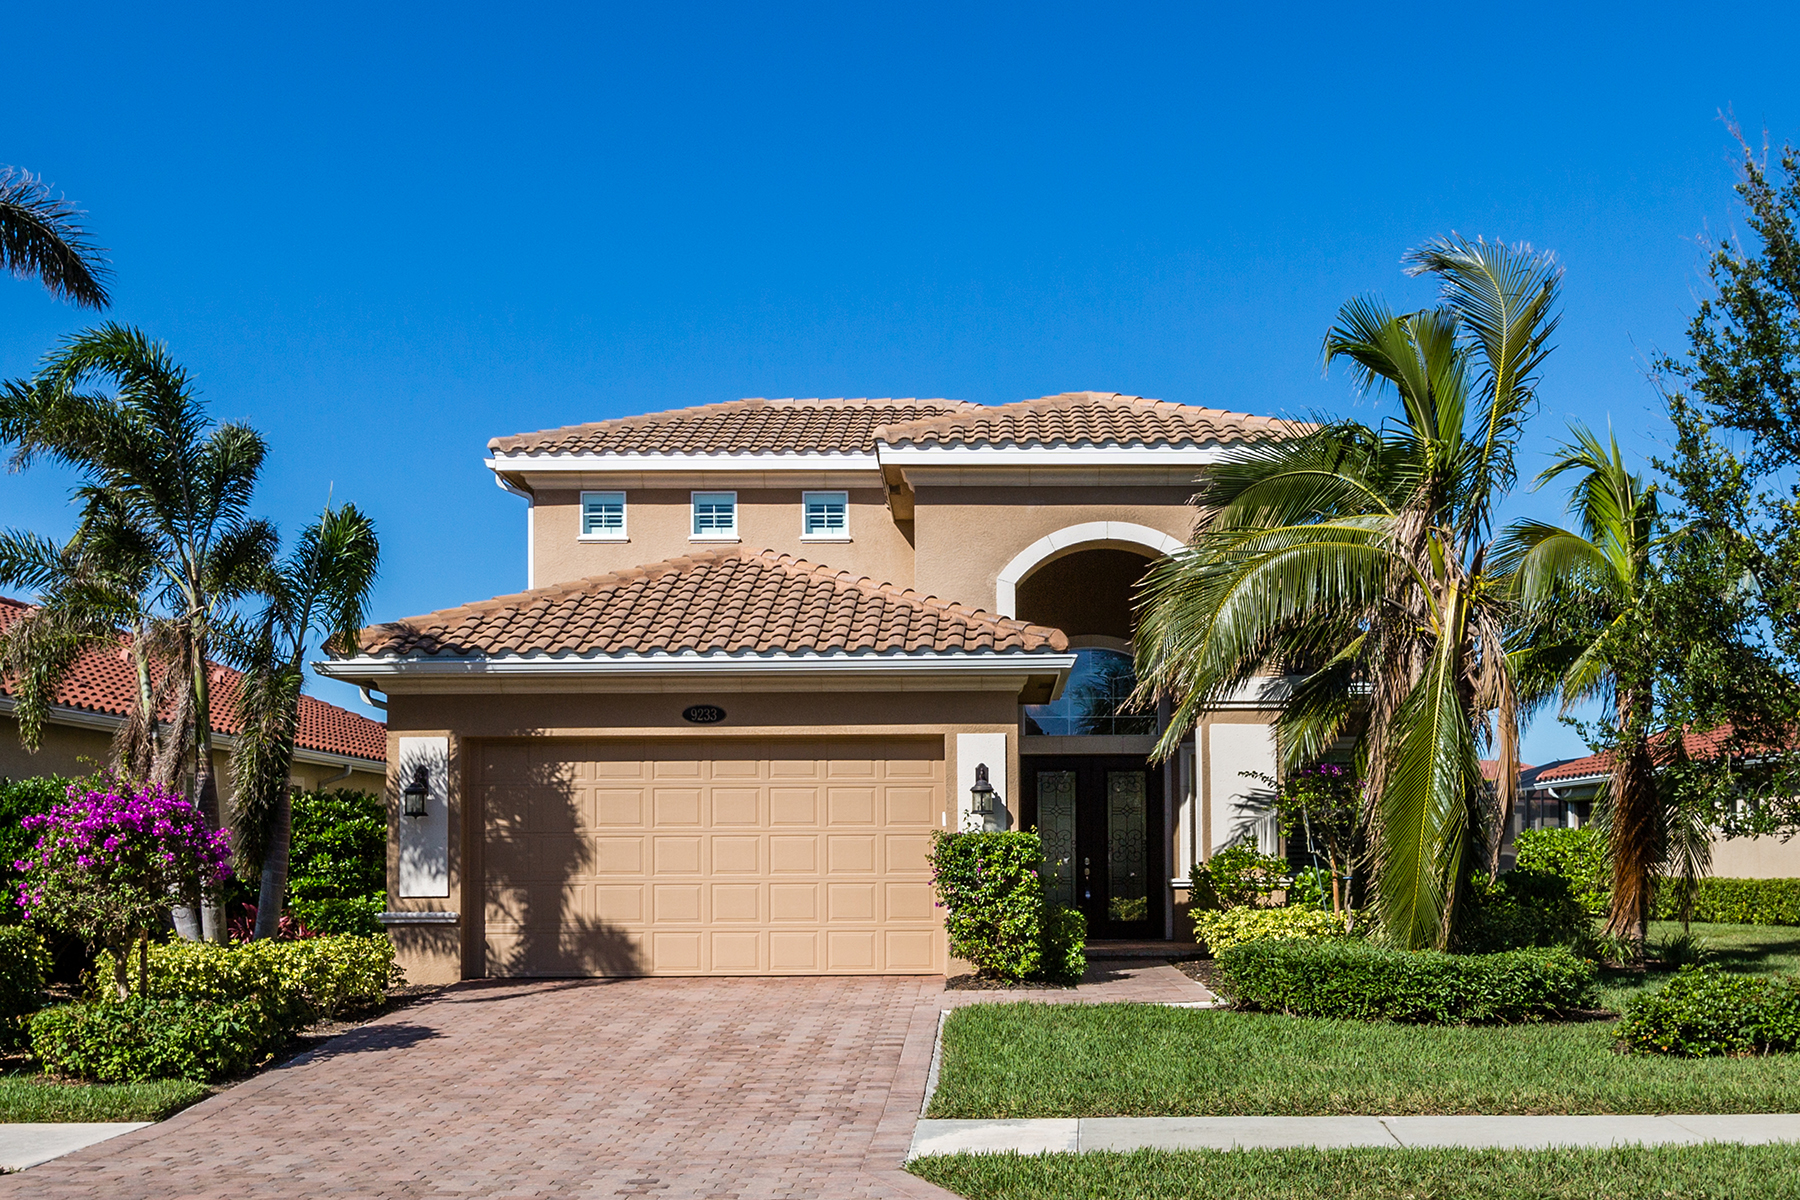 Single Family Home for Sale at FIDDLERS CREEK 9233 Campanile Cir, Naples, Florida 34114 United States